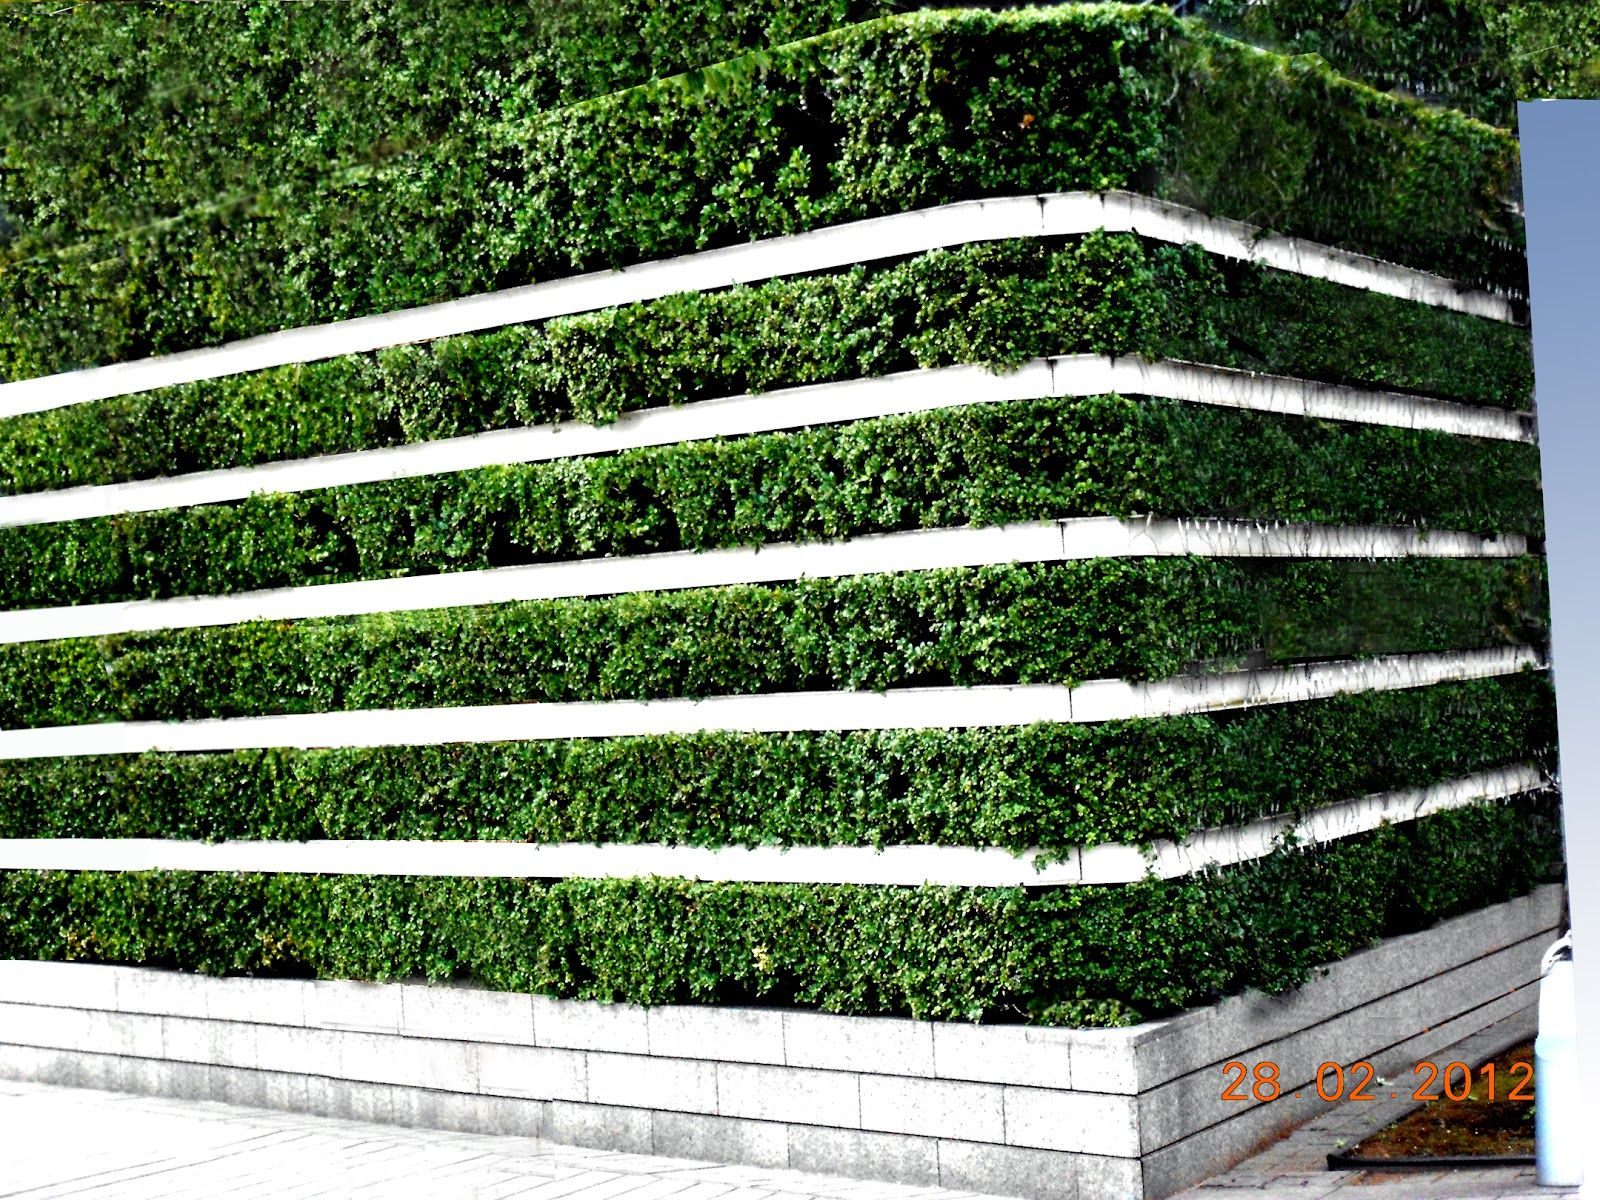 agro-wall vertical garden planting system: agro-wall vertical